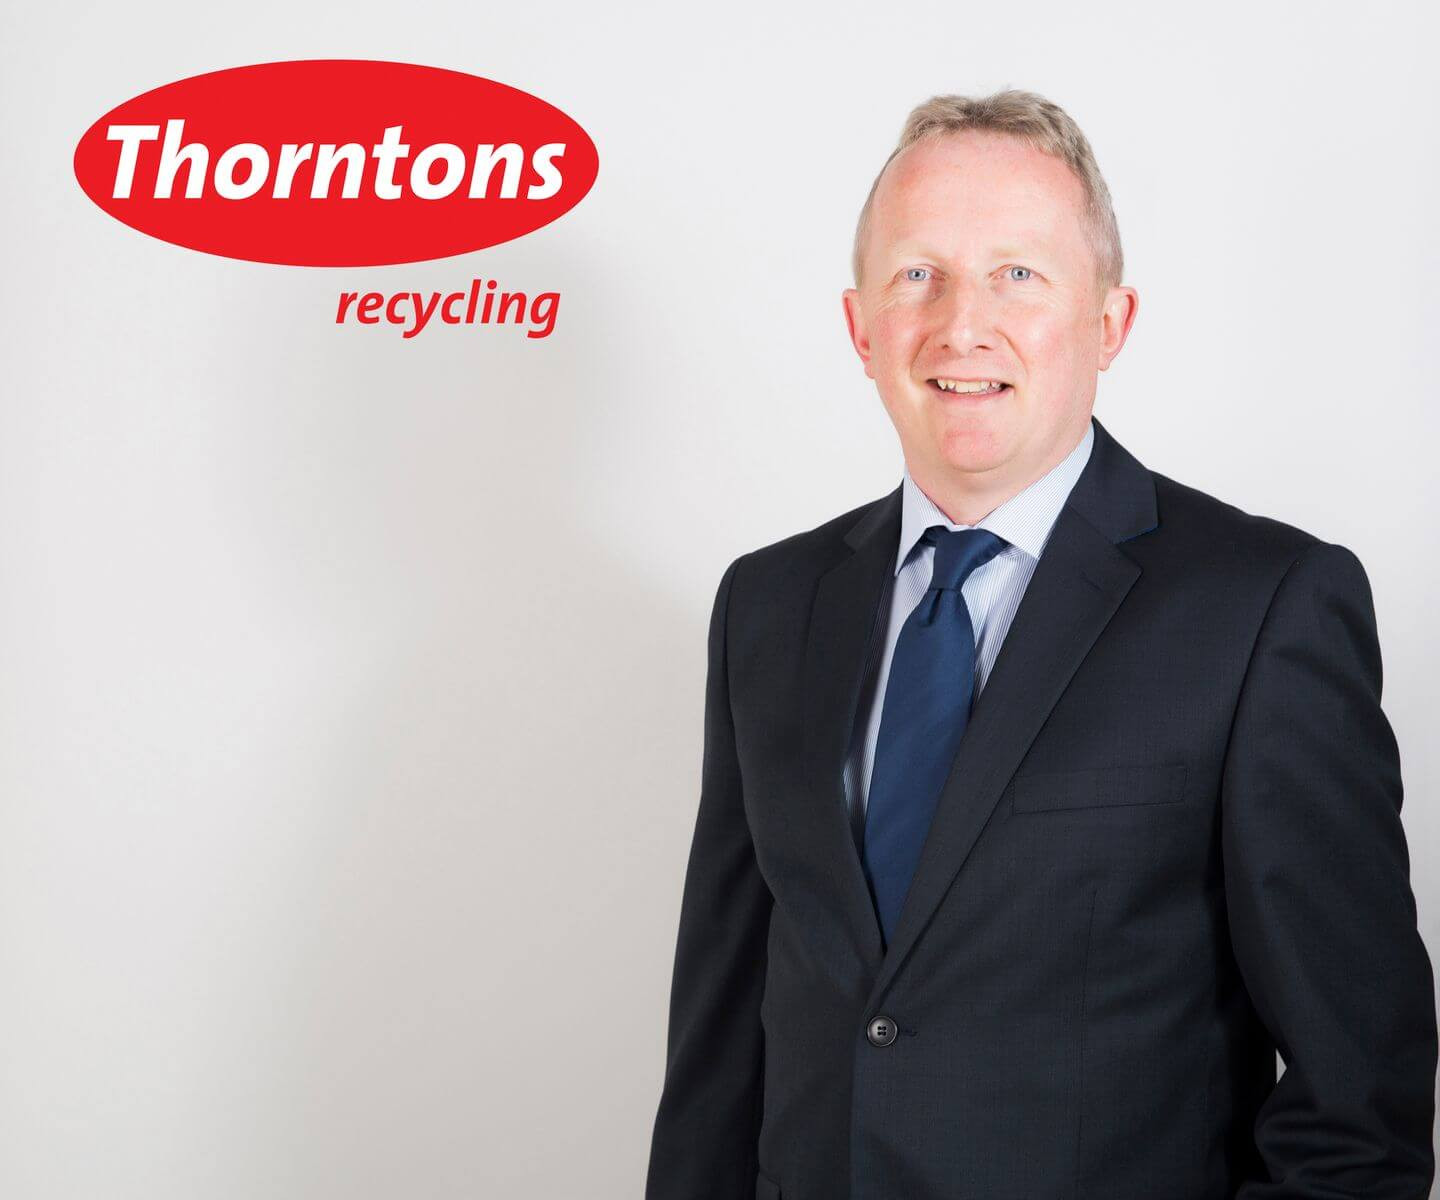 Thorntons Recycling